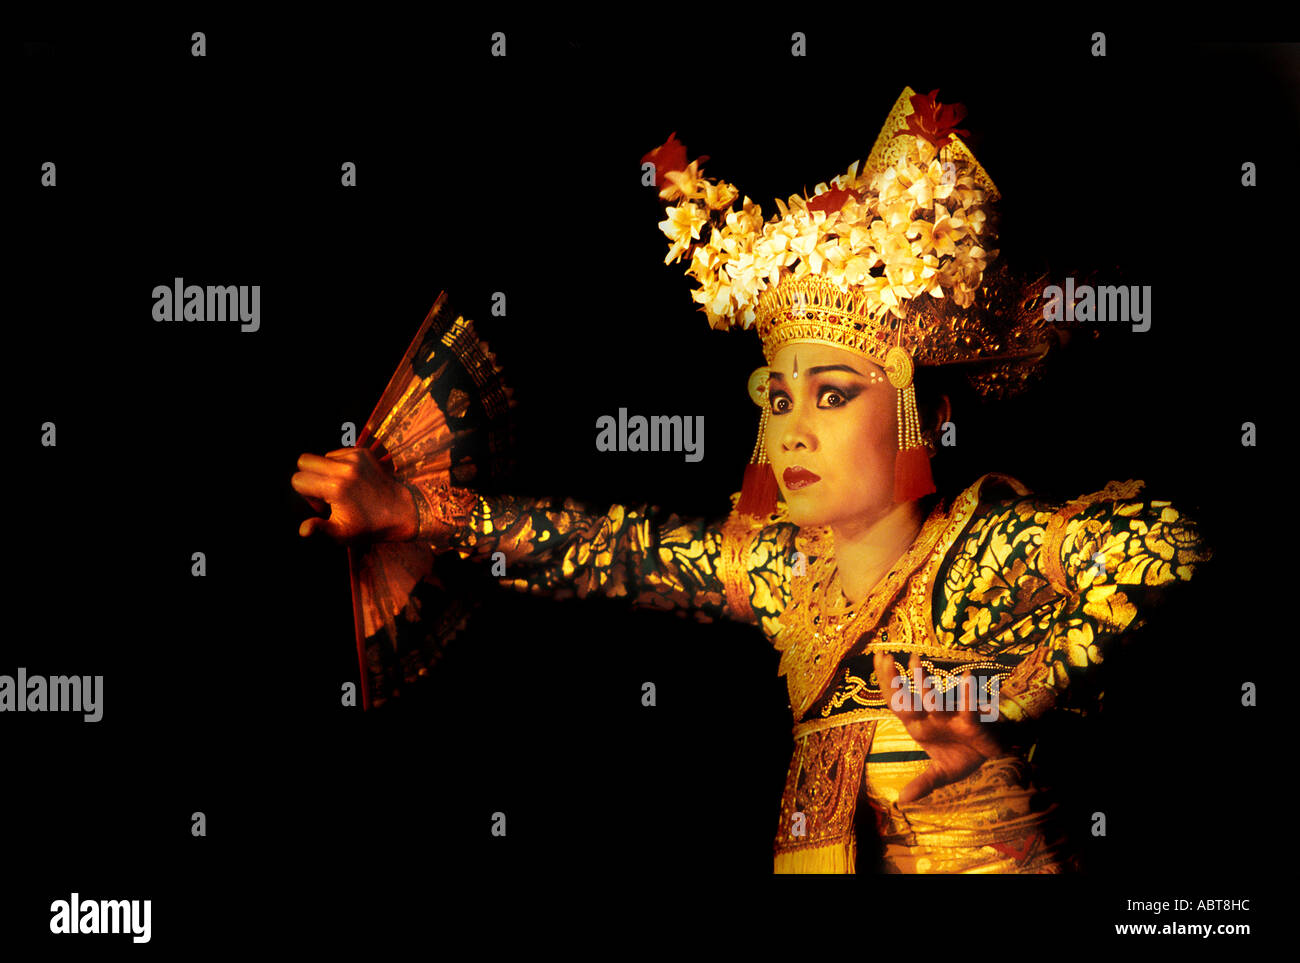 Balinese dancer at night performance Legong dancers Ubud Bali Indonesia Black background Photo by Jamie Marshall Stock Photo